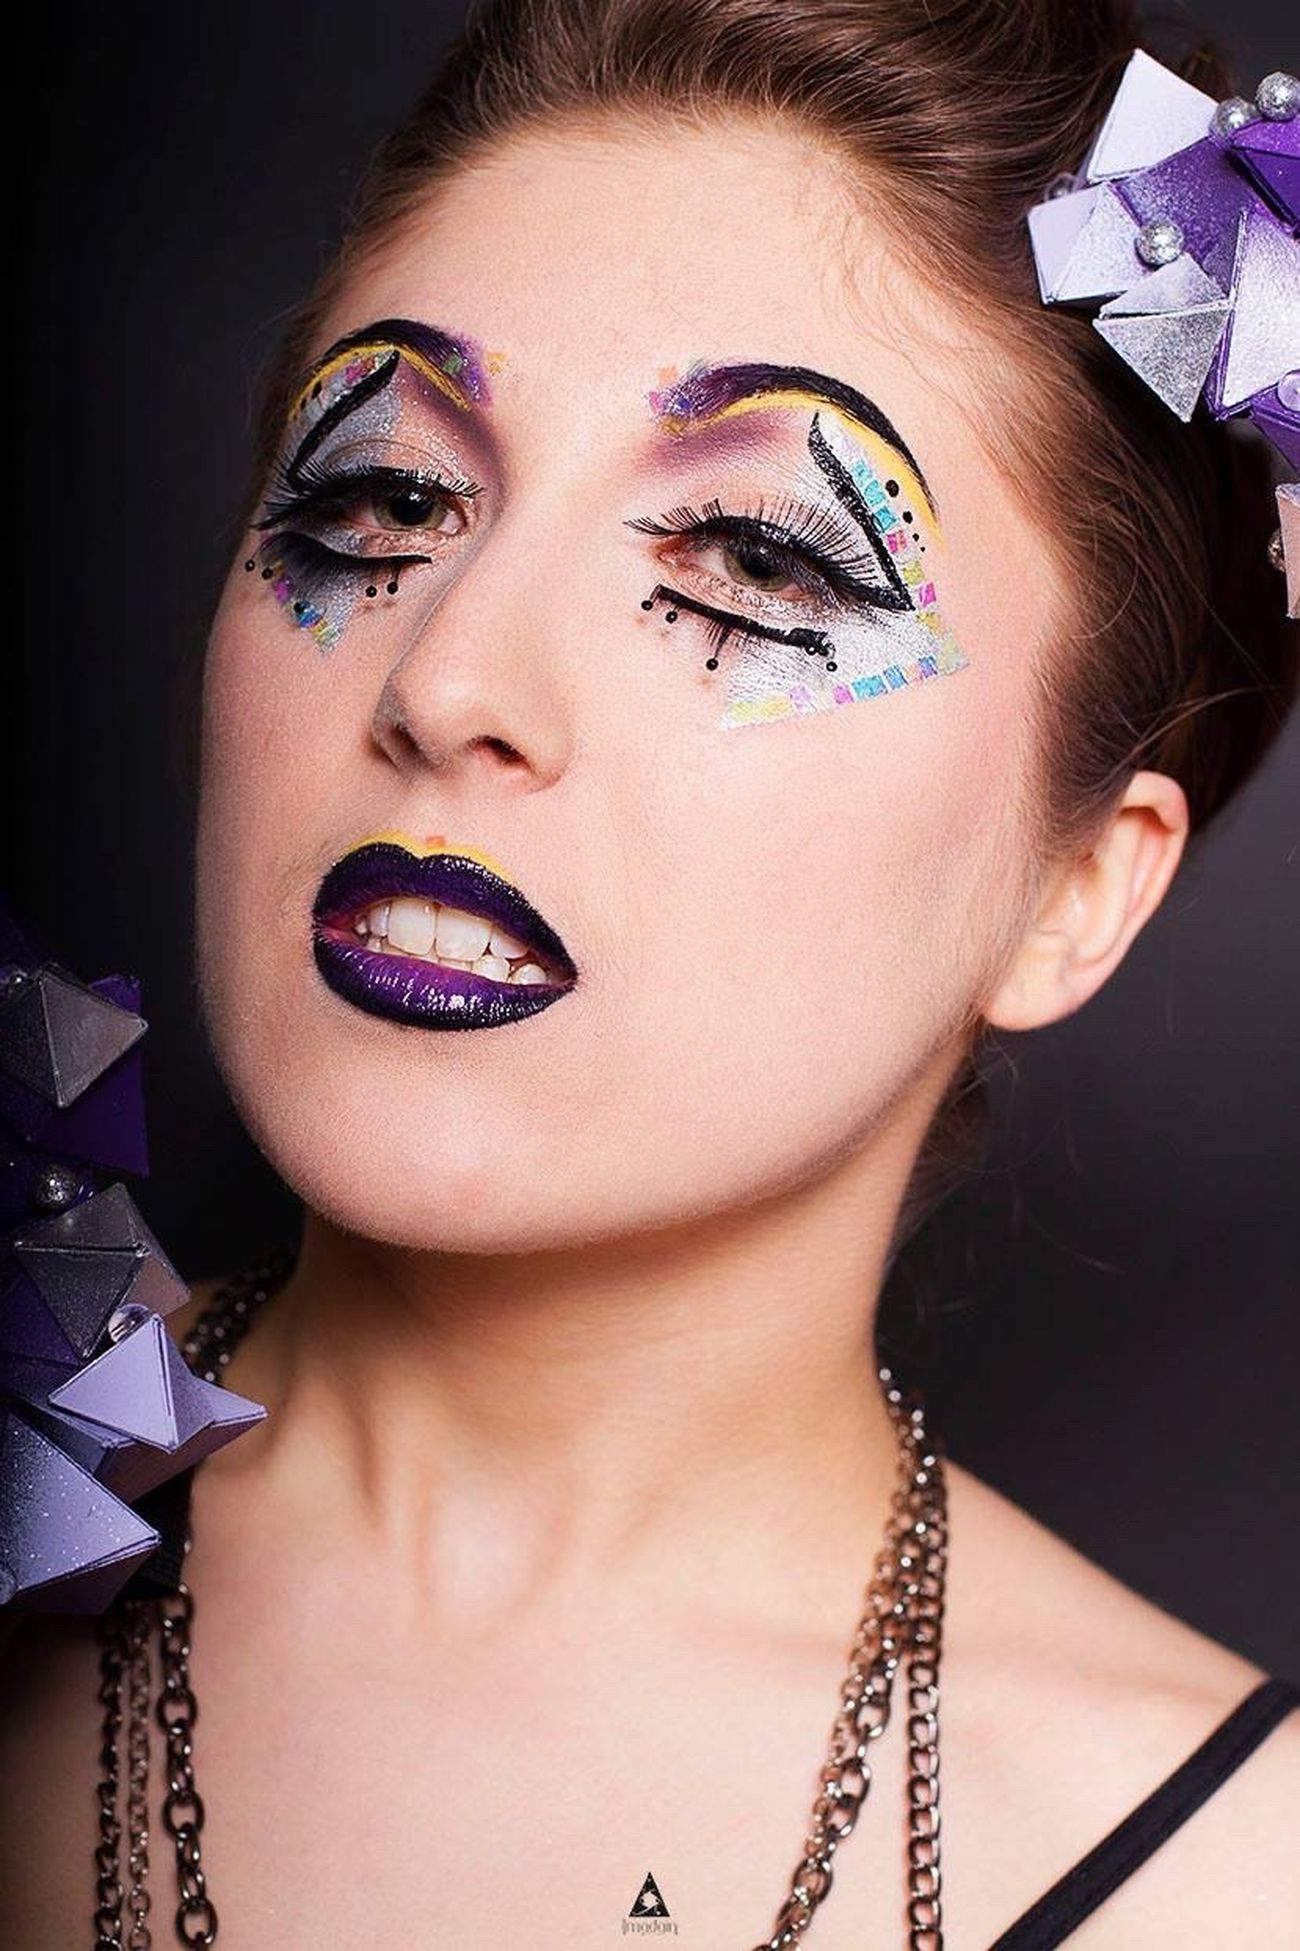 Lash Show, Makeup by Marion Maquillage Makeup Make Up Forever Studio Concours Purple Violet Photooftheday Photography Imadgin Maquillage Fashion Beauty Gaga